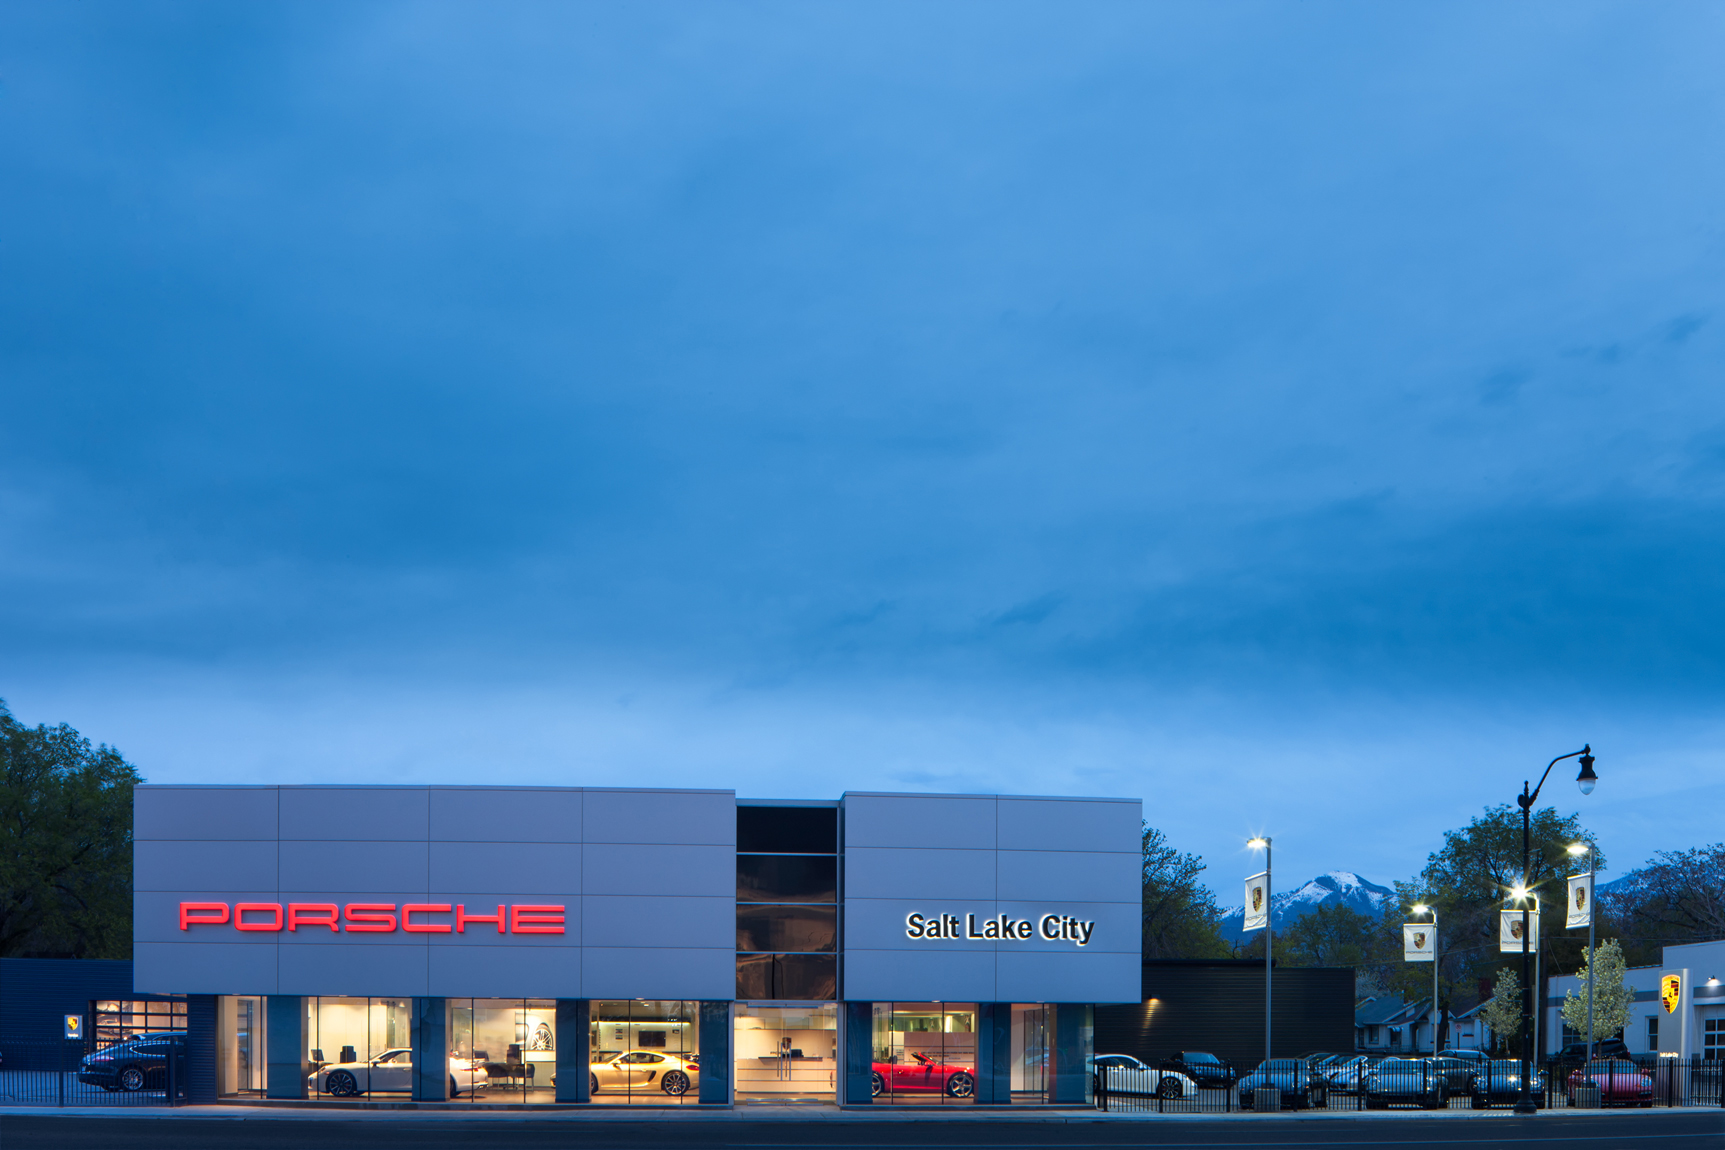 Exterior view of a Porsche Automotive dealership. The building is a modern, metal clad structure with large glass windows which highlight the showroom floor and the automobiles on it.